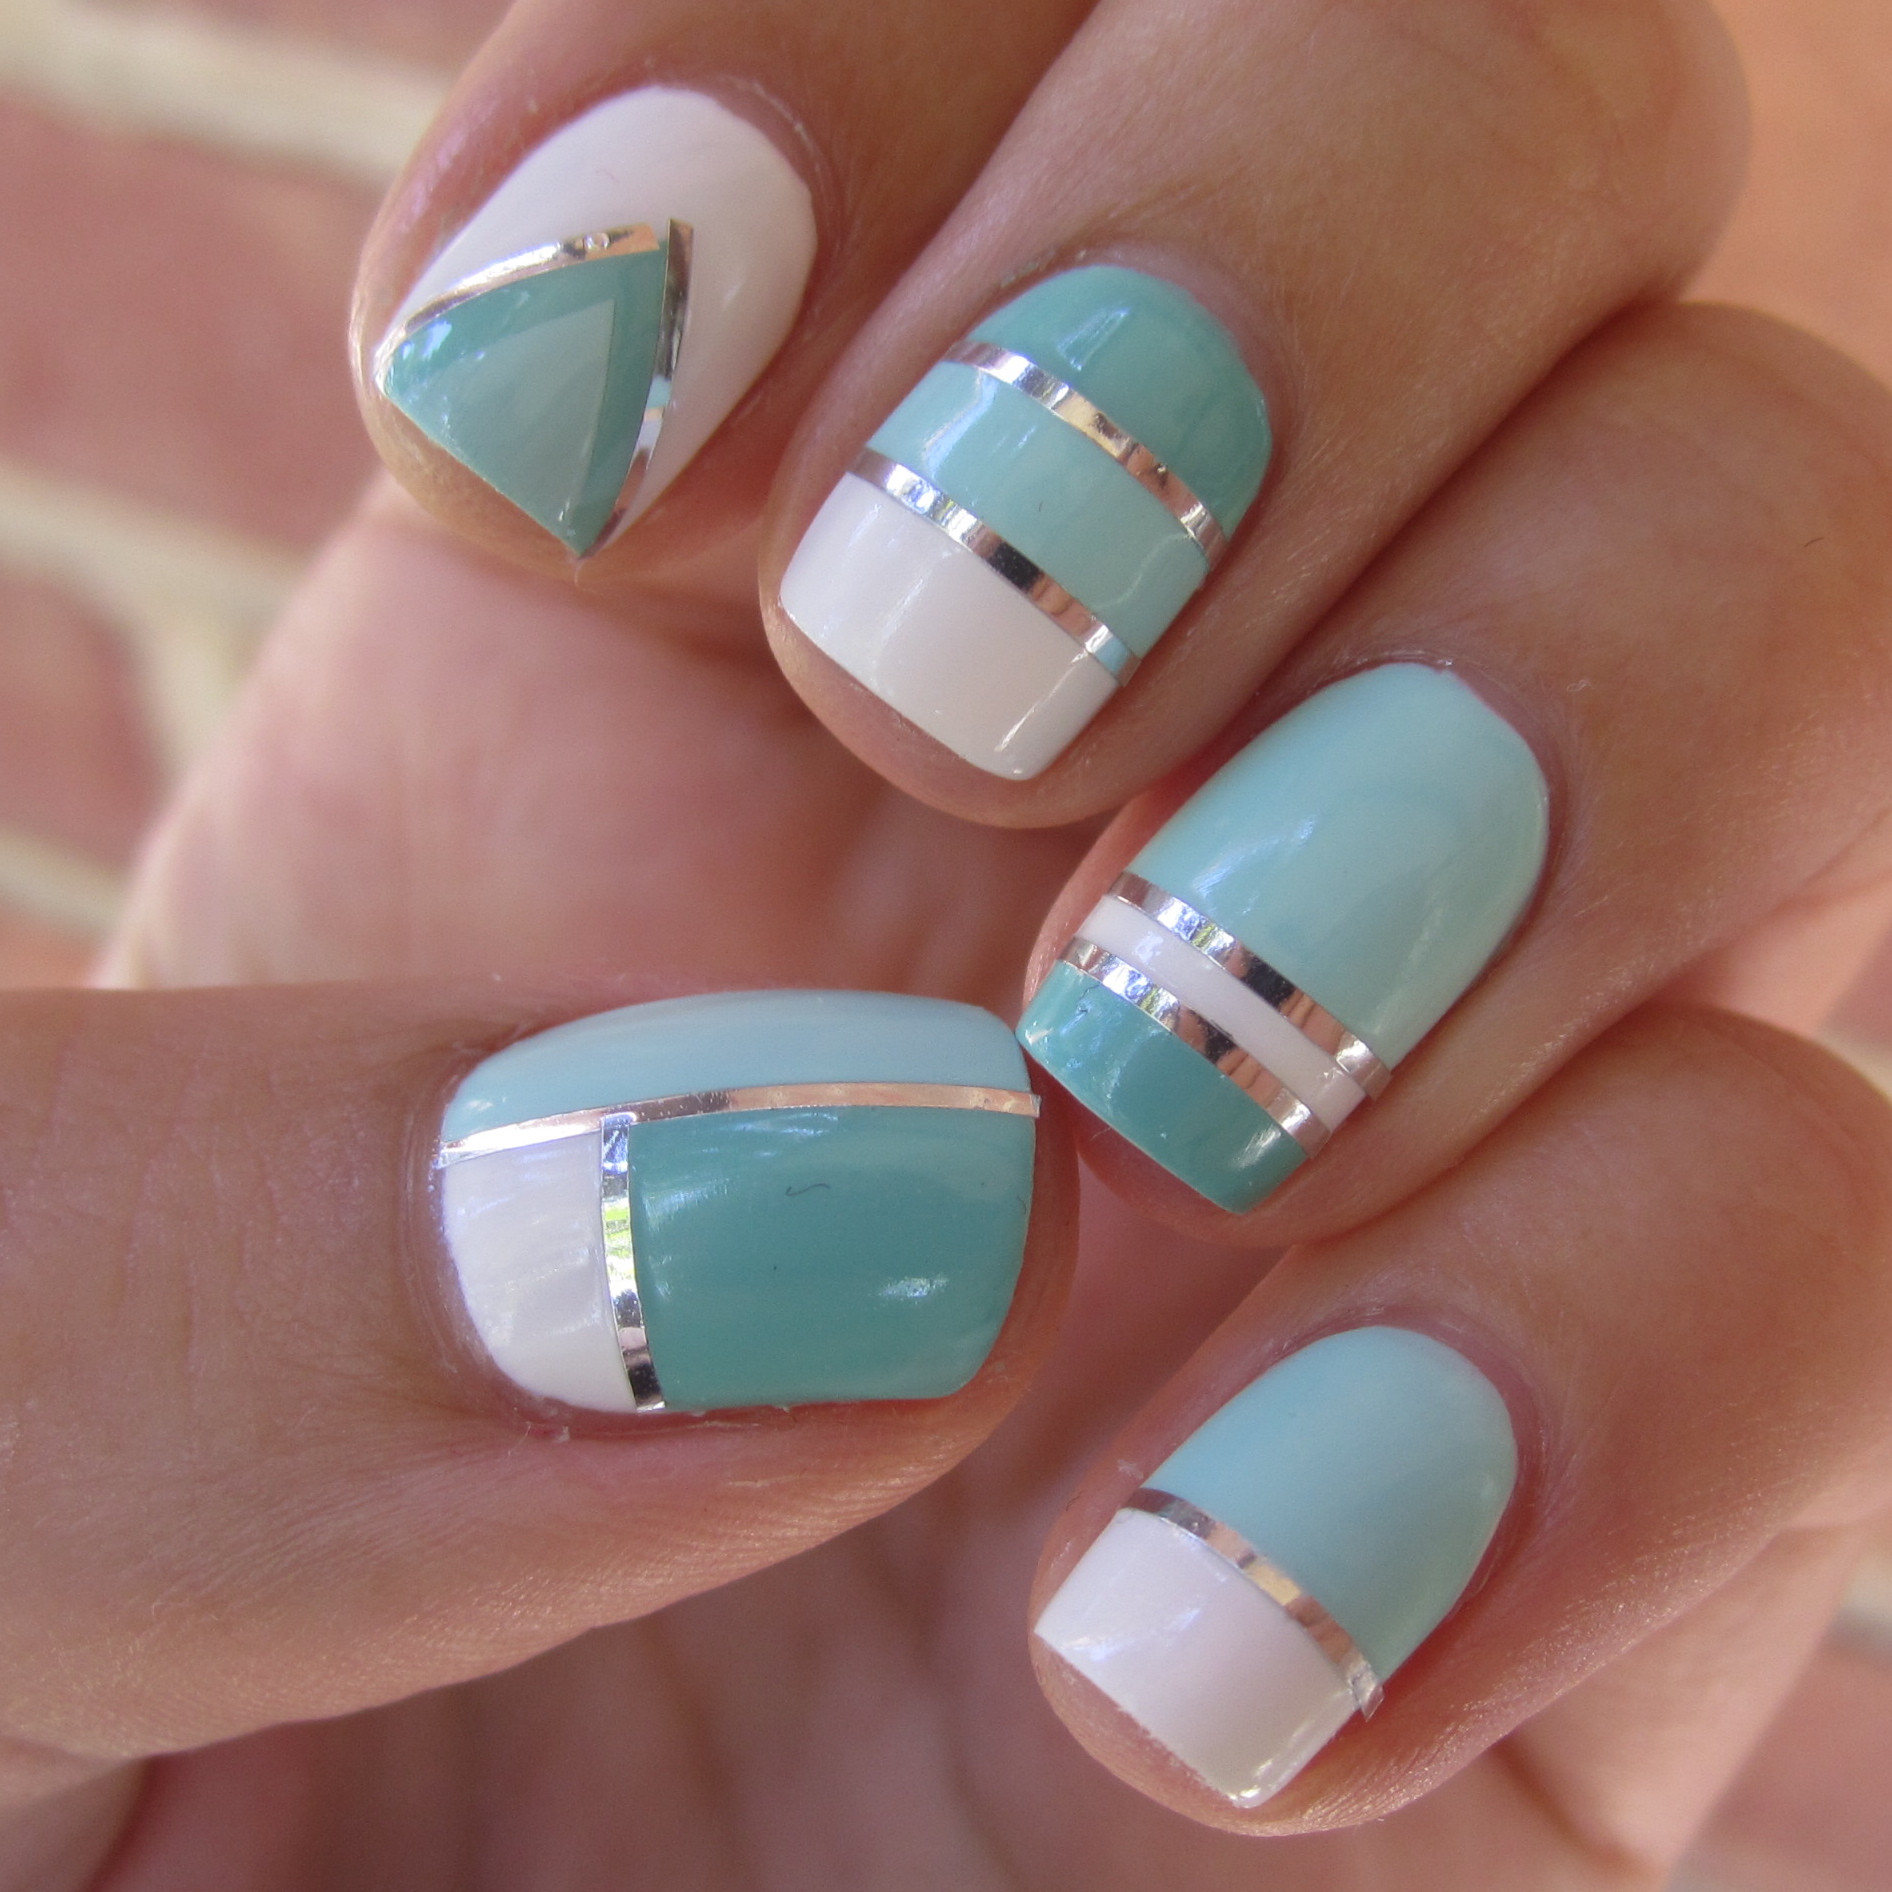 Try These Simple Nail Art Designs At Home Indian Makeup And - At home nail art designs for beginners